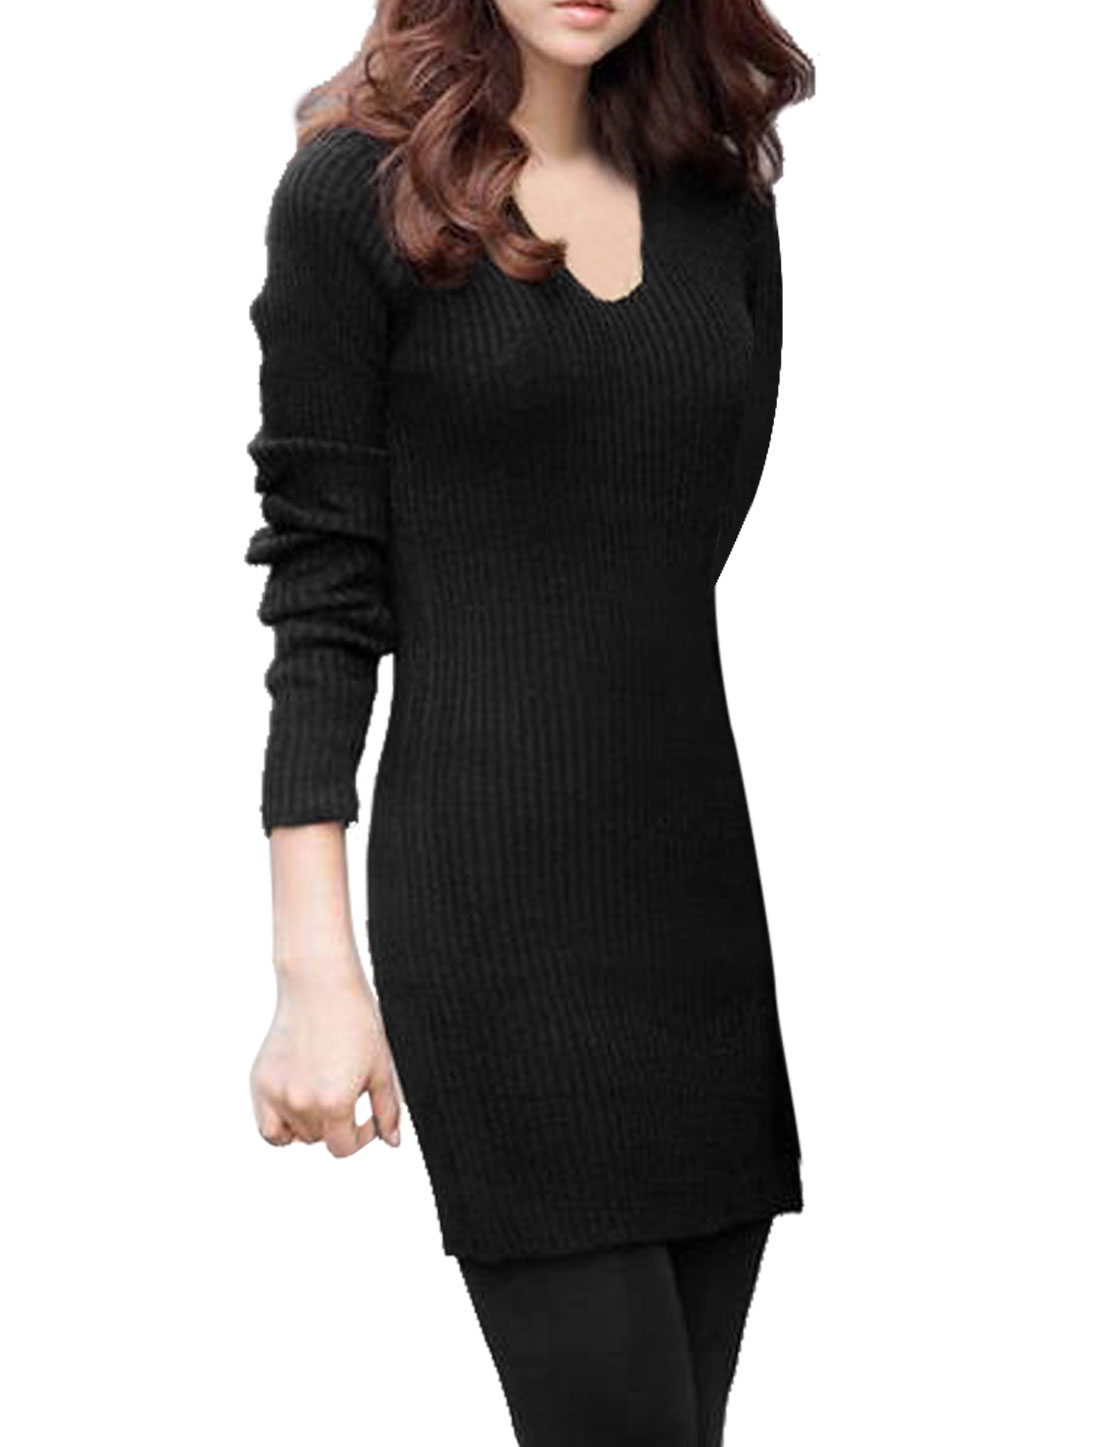 Lady Scoop Neck Long Sleeves Stretchy Simple Black Knit Dress XS